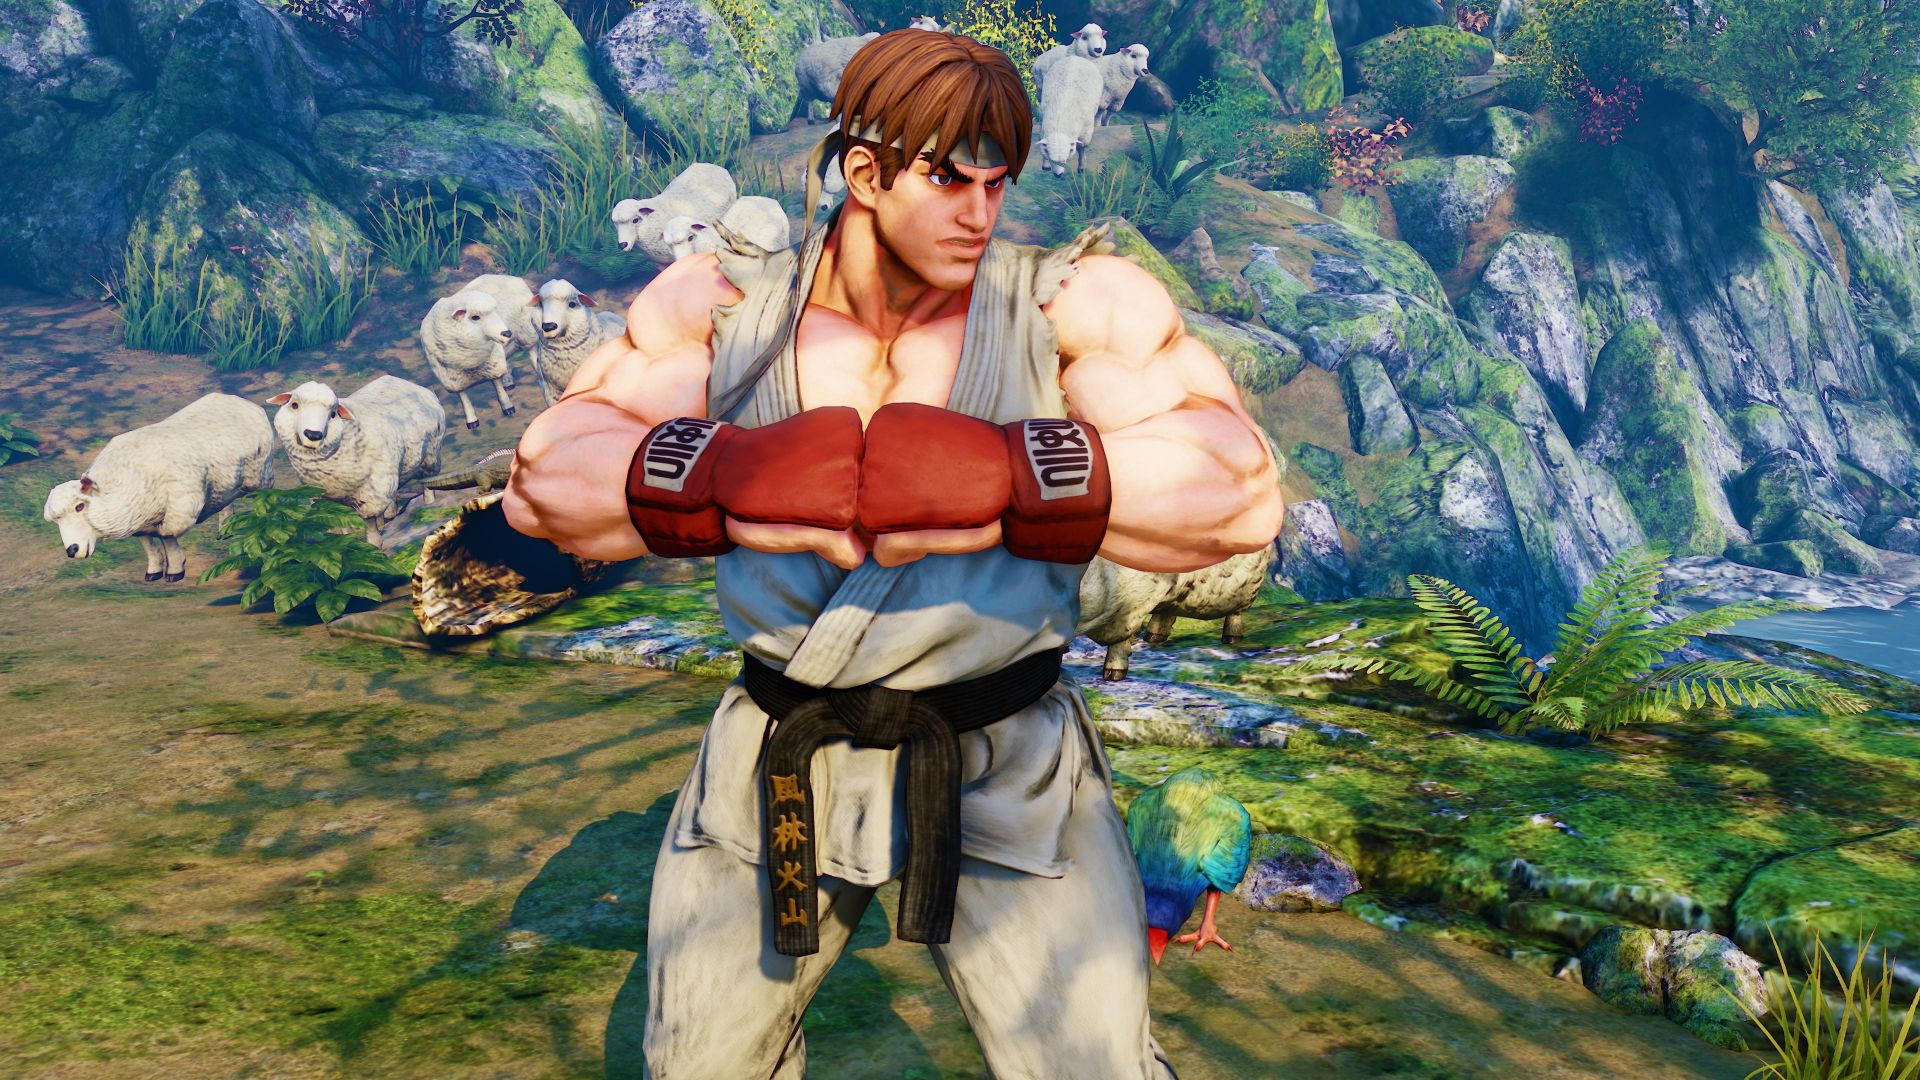 Street Fighter 5, Рей, Лучшие игры, фентези, ПК, PS4, Street Fighter 5, RYU, Best Games, fantasy, PC, PS4 (horizontal)